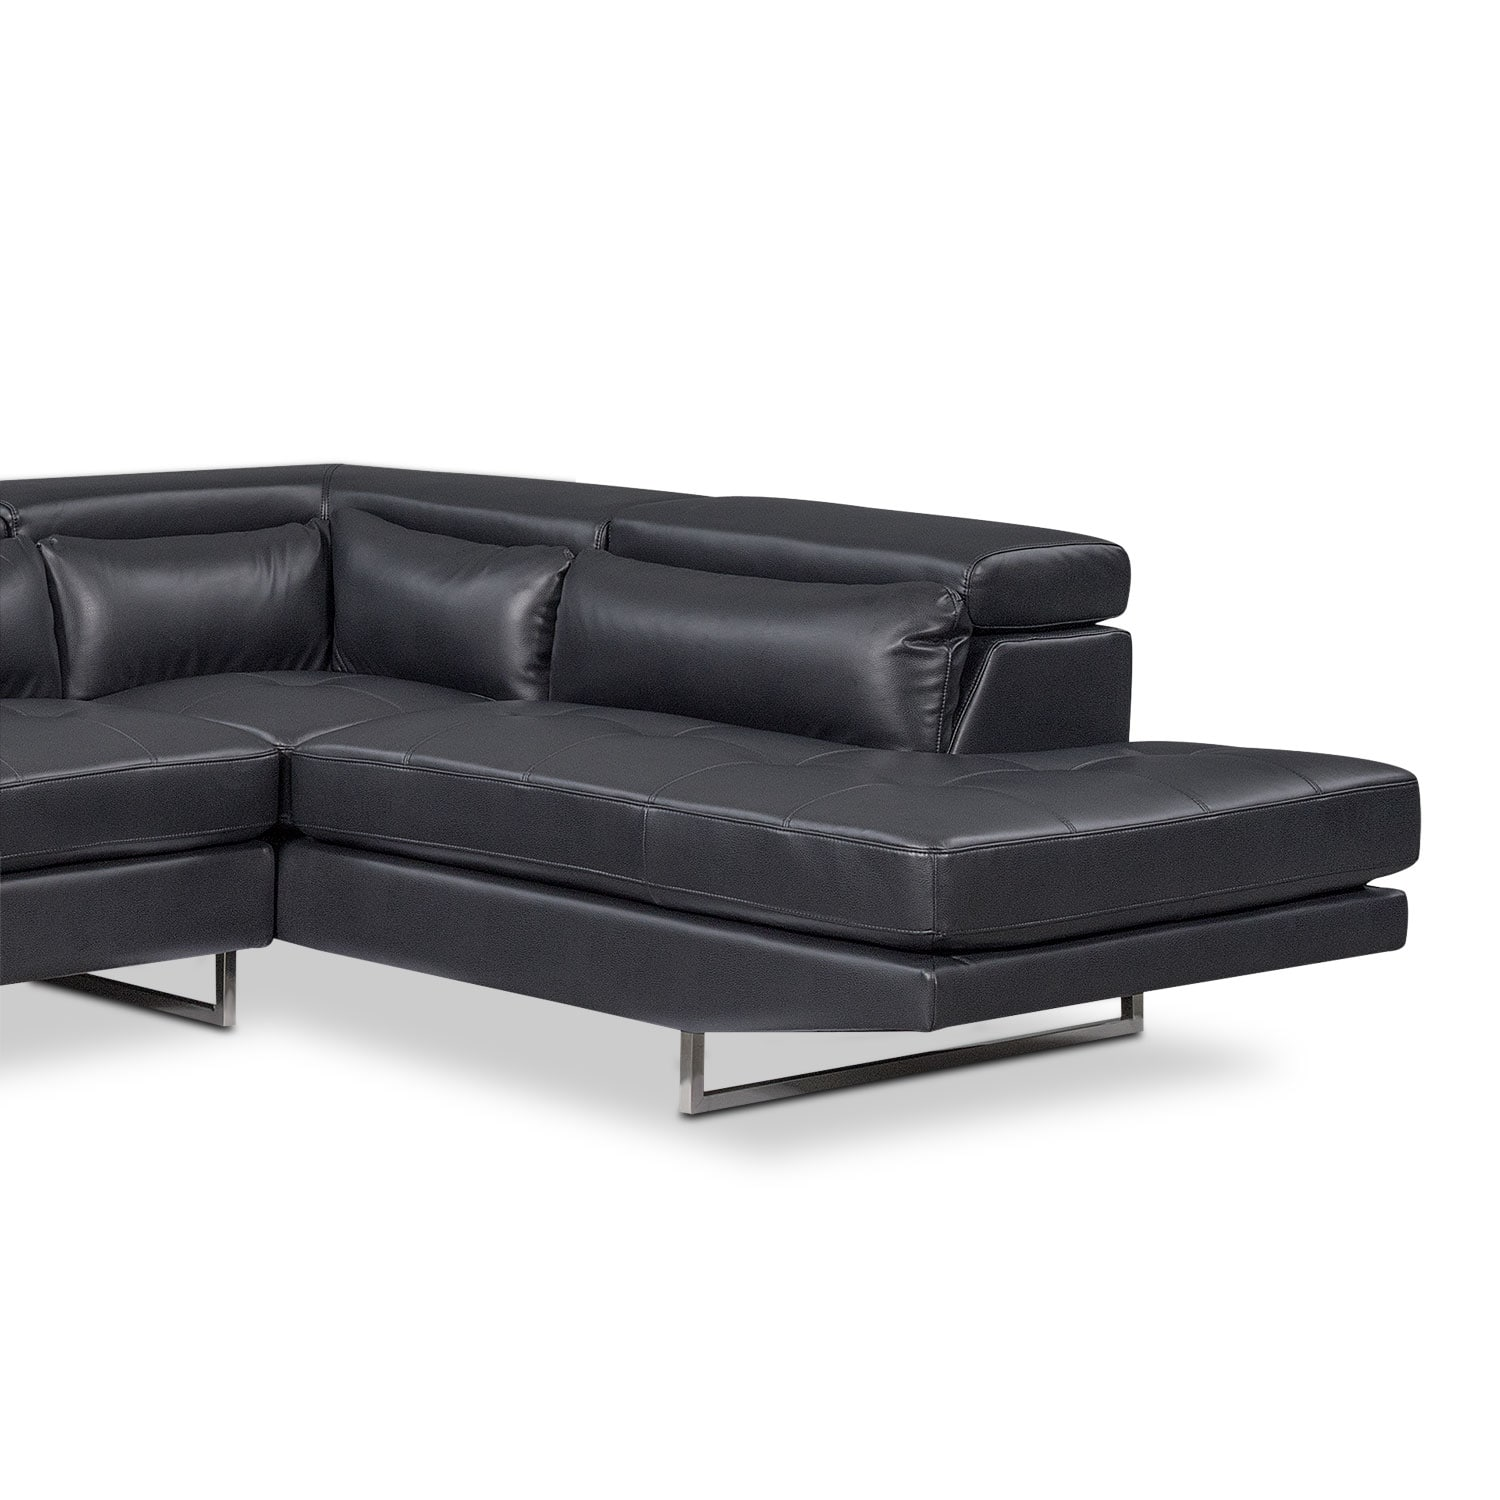 Torino 2 Piece Sectional With Right Facing Chaise